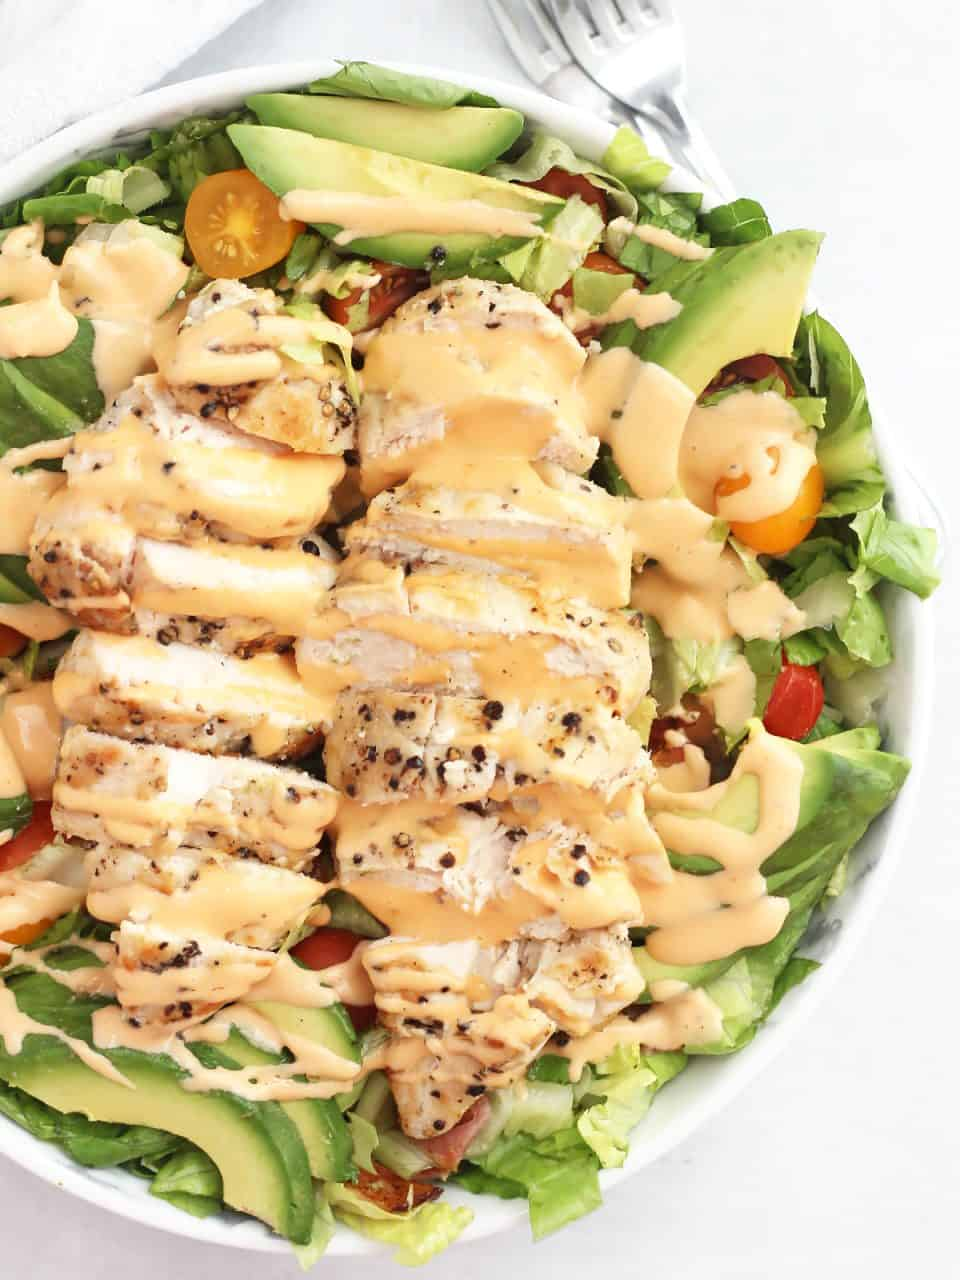 Overhead shot of two sliced chicken breasts on a bed of salad.